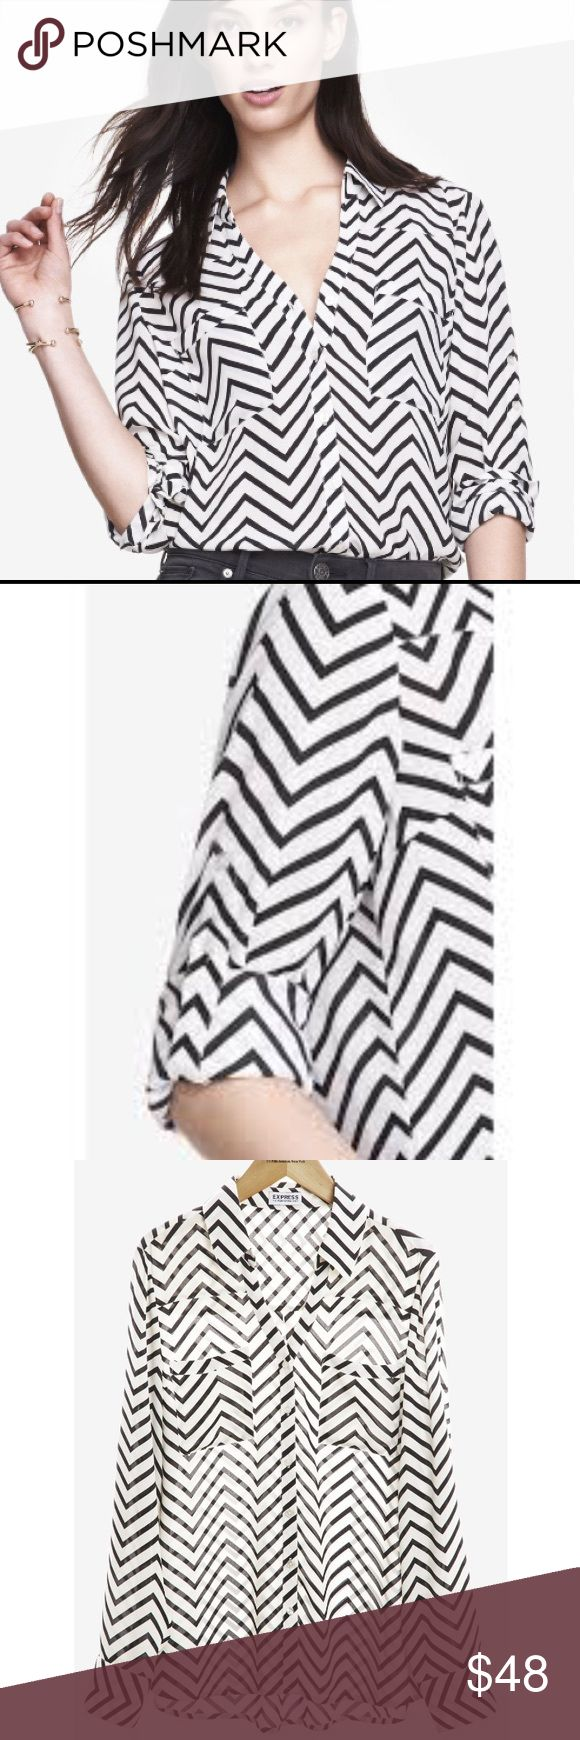 Express Classic Chevron Shirt Express Black & White Chevron Convertible Sleeve Portofino Shirt.  Tucks Perfectly into a pencil skirt or pants for all-season wearability. 100% Polyester🌺 Offers Welcome! 🌺 Express Tops Button Down Shirts